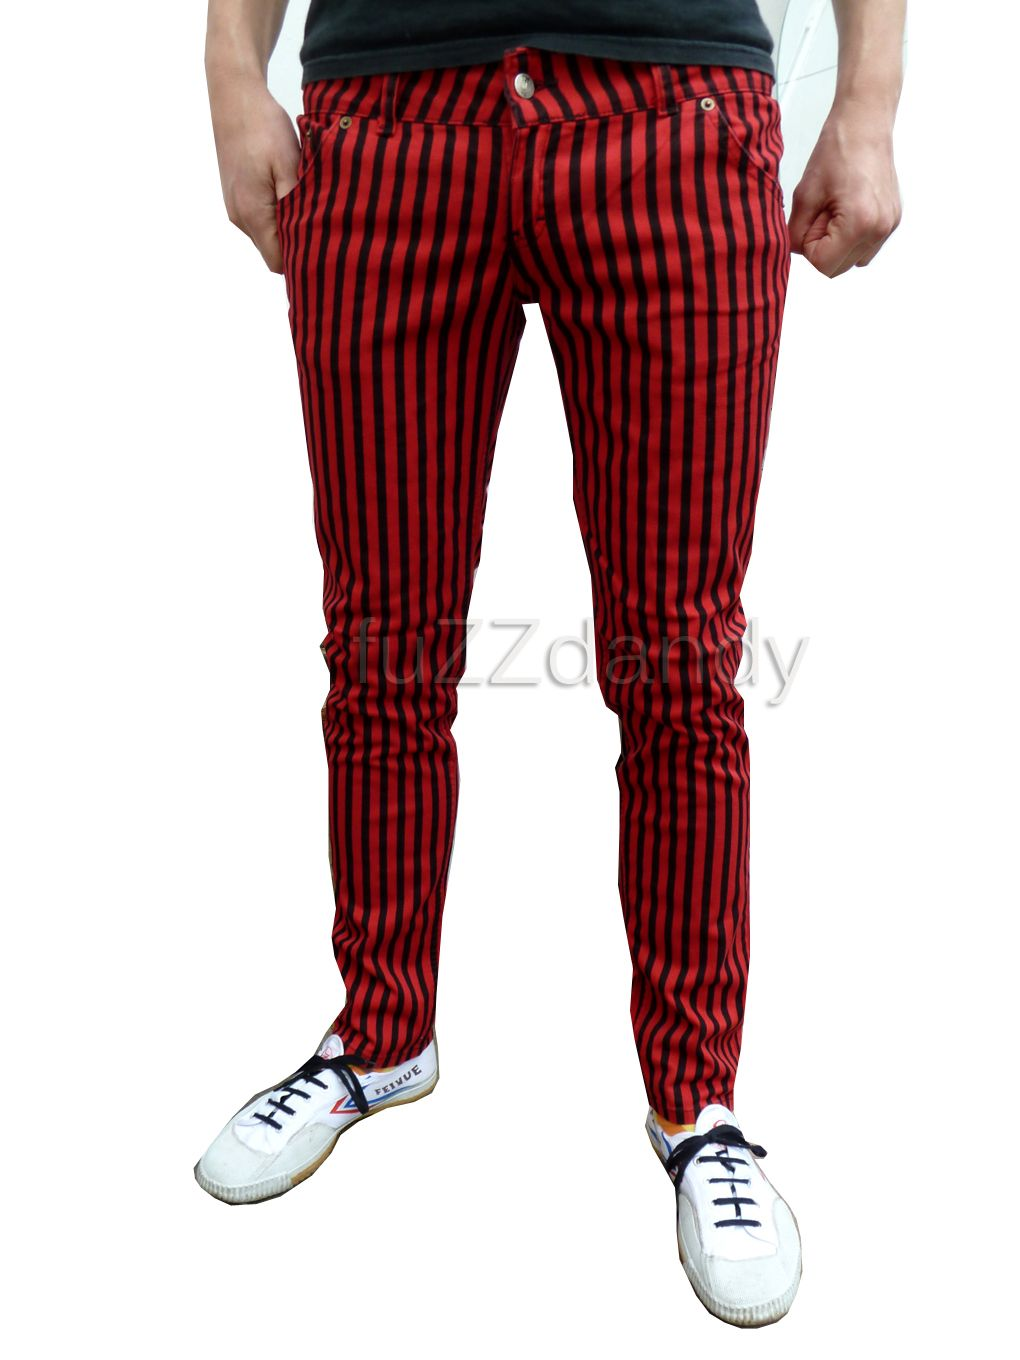 Ronnie - Super Skinny Jeans red & black stripe